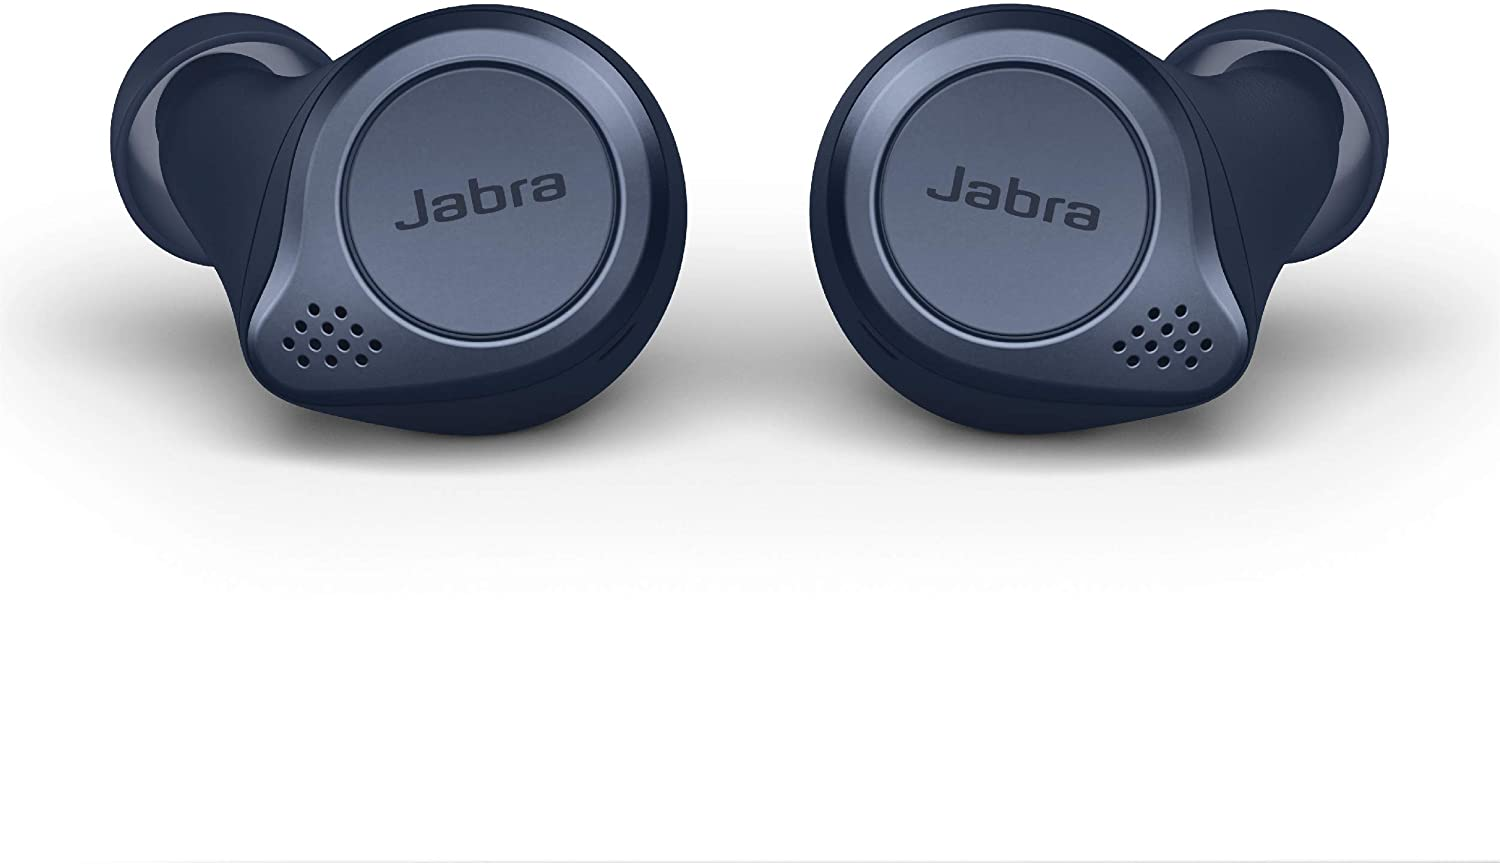 Jabra Elite Active 75t earbuds, Best Wireless Earbuds for Android